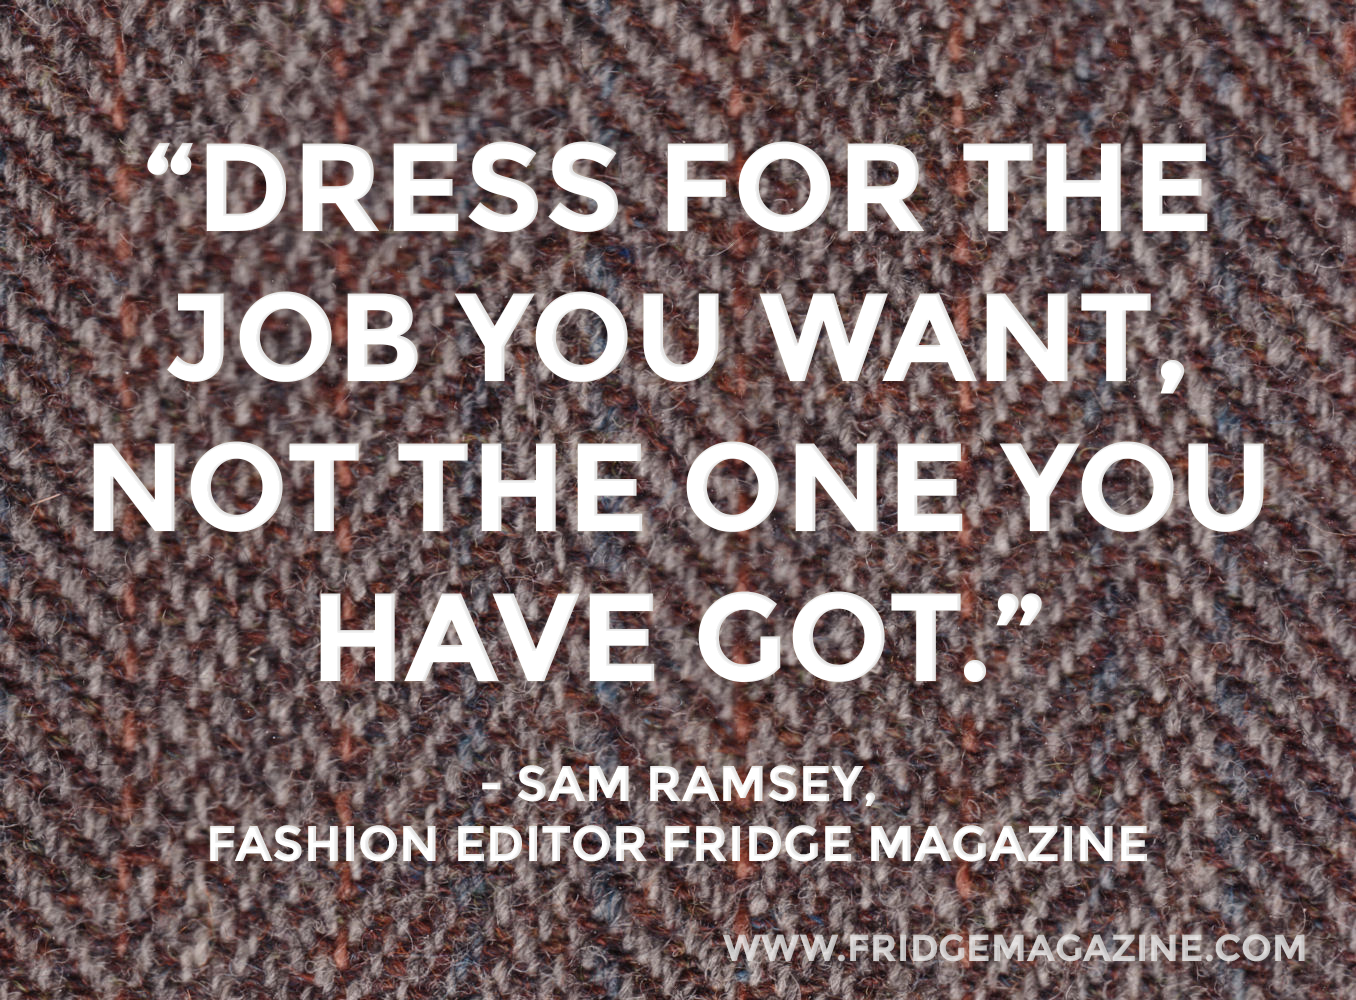 Fridge Magazine Quote Fashion Dress For The Job You Want Not The